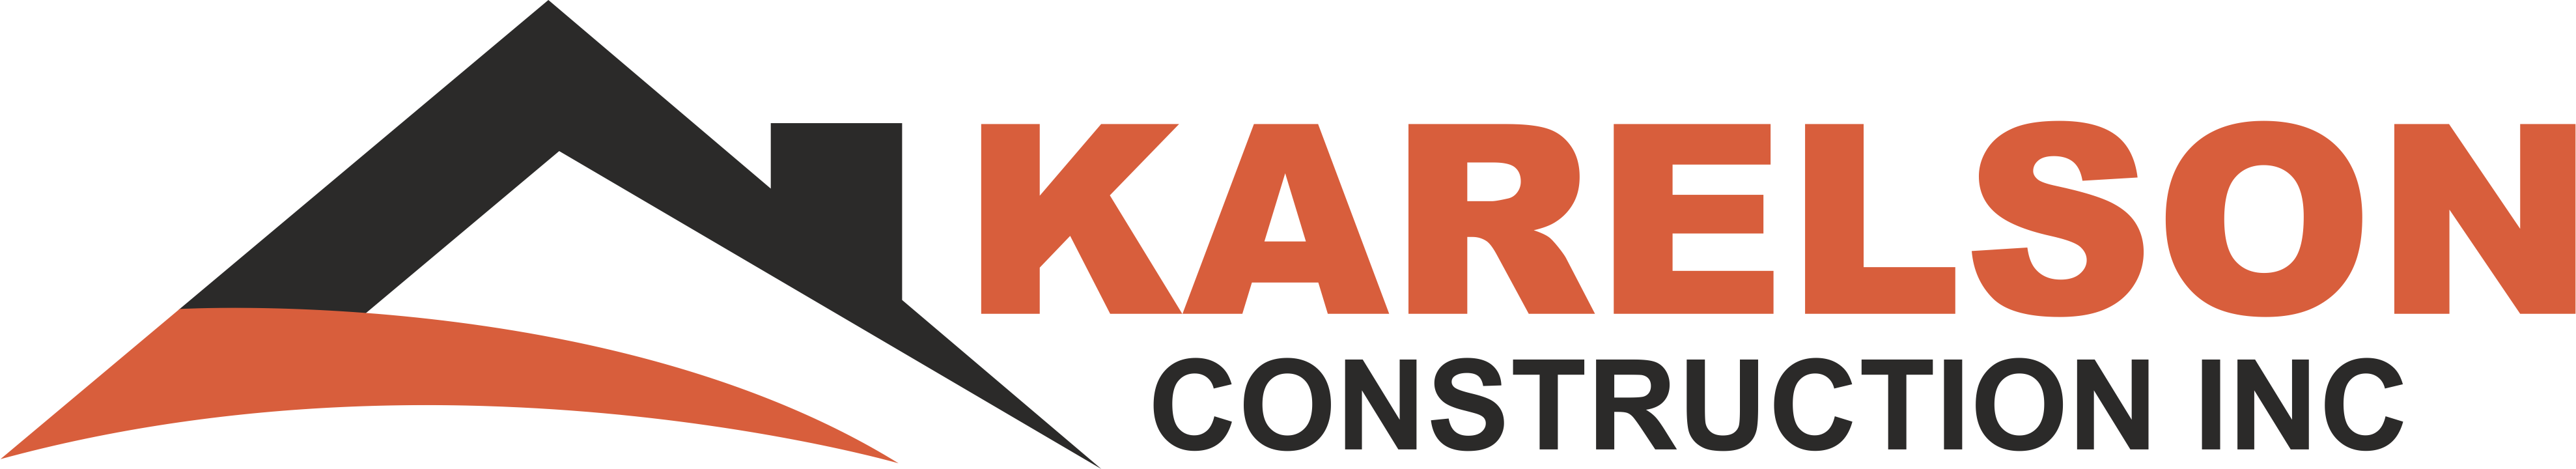 Karelson Construction Inc.